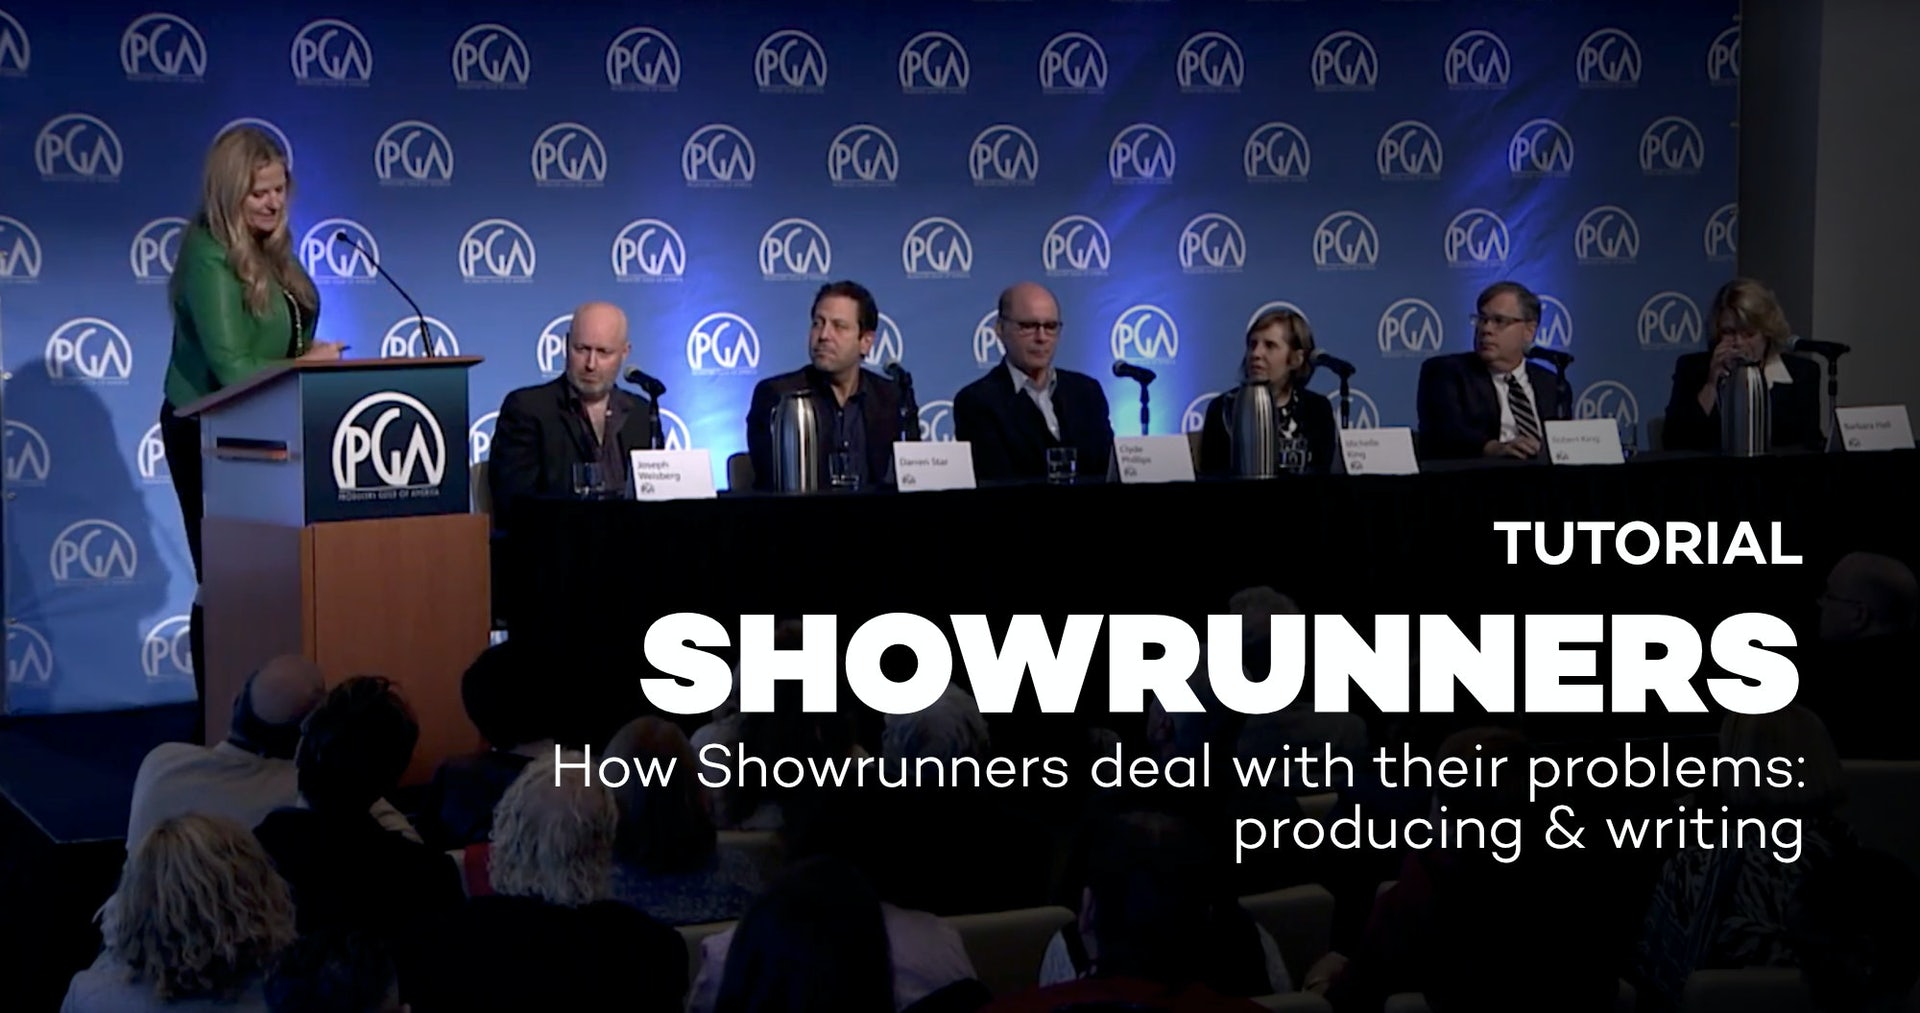 How Showrunners deal with their problems: producing & writing